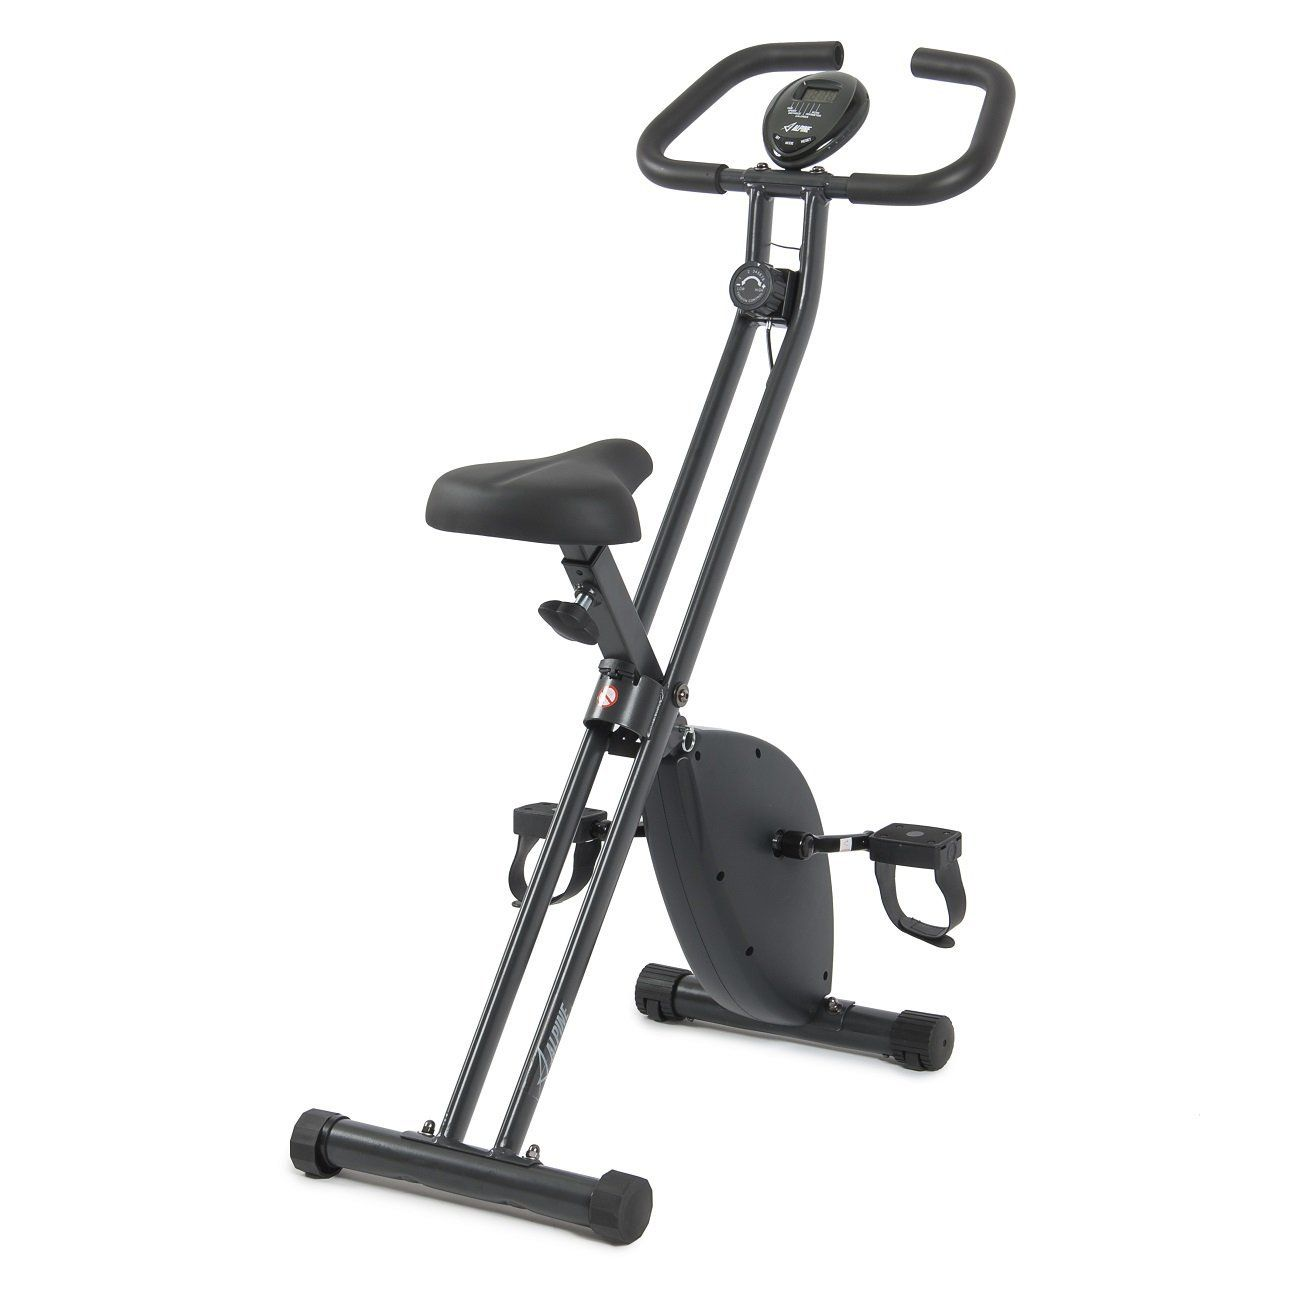 This Alpine X Bicycle Folding Exercise Bike Is Ideal For Anyone On